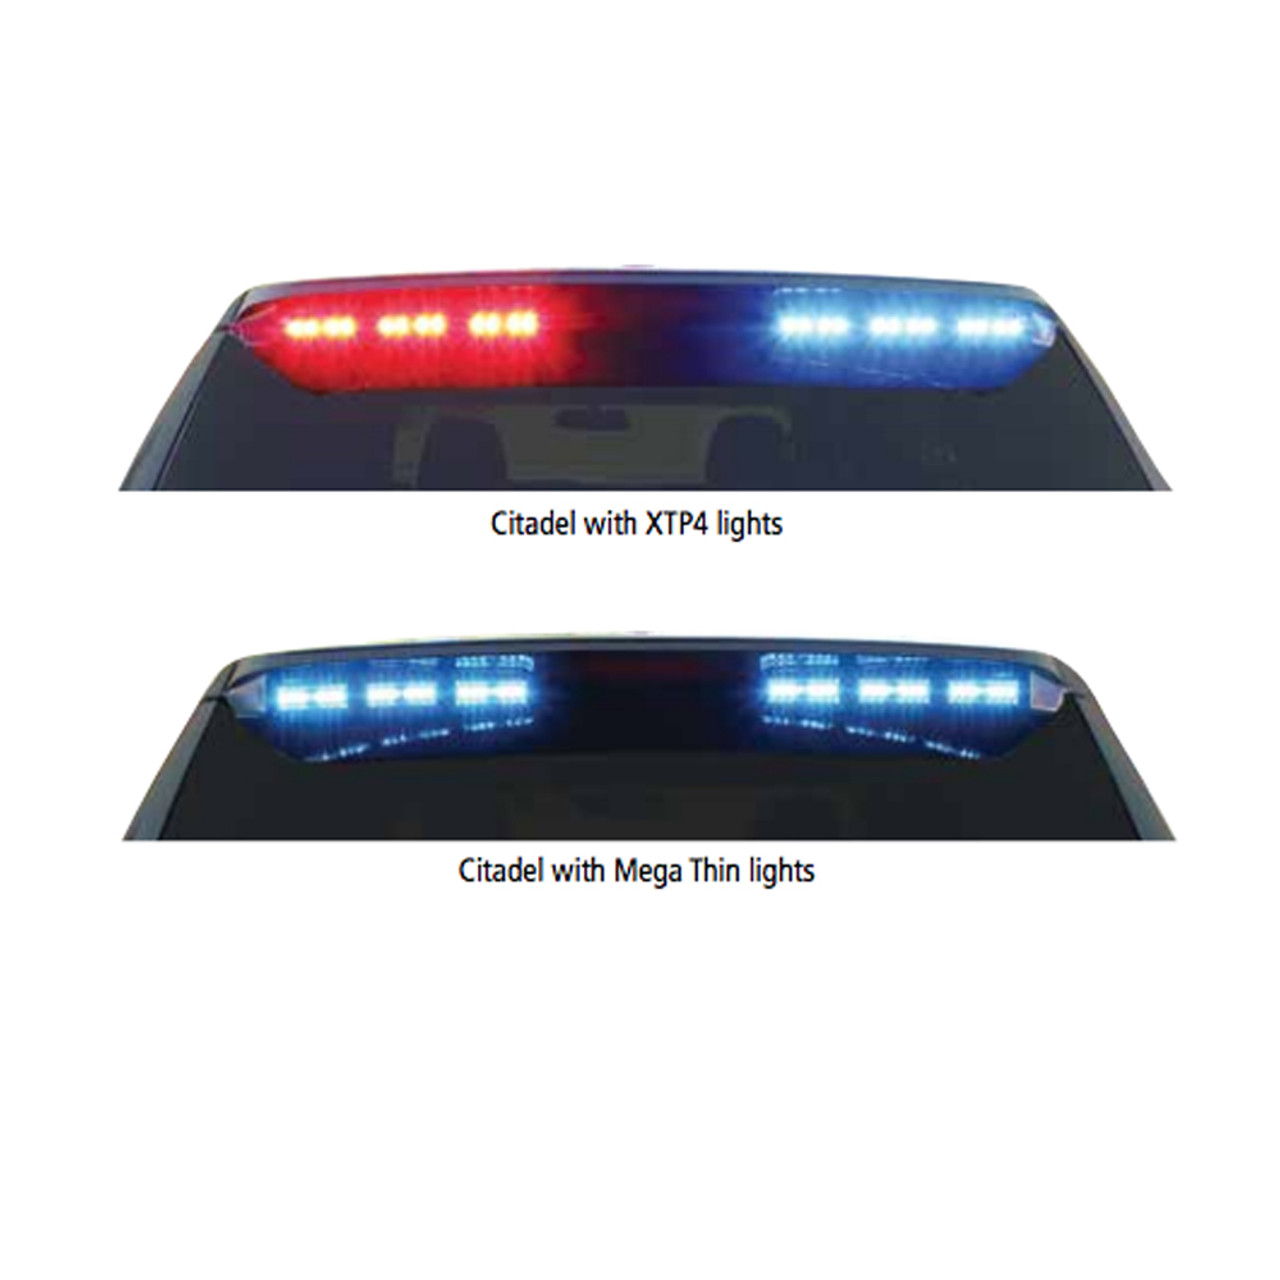 Code-3 Citadel™Rear Spoiler Warning and Traffic Advisor Light Bar (2000-2019 Chevy Suburban) MegaThin 6 LED Single color per lighthead, with flex controller for ArrowStik Functionality ULT6-SC-S